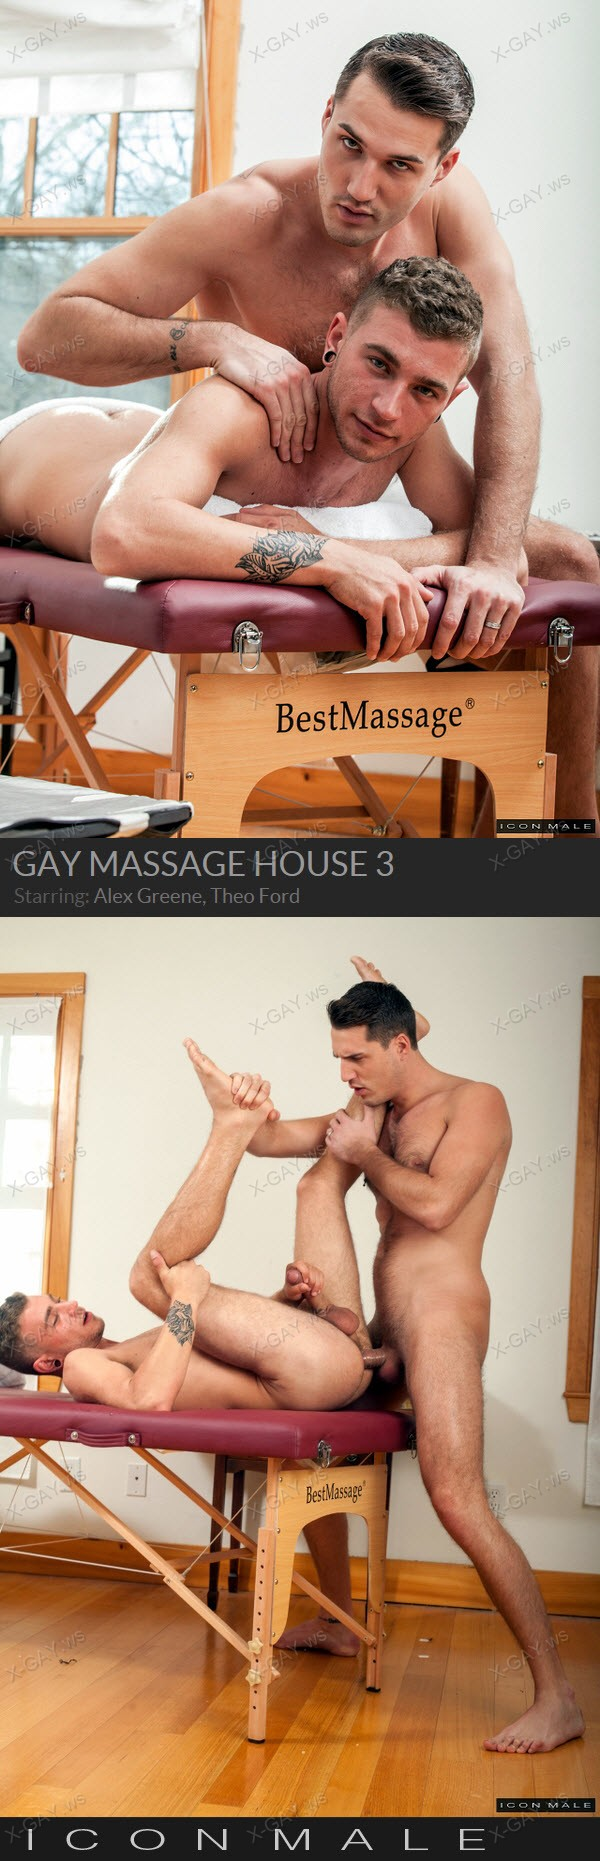 IconMale: Gay Massage House 3, Scene #3 (Alex Greene, Theo Ford)